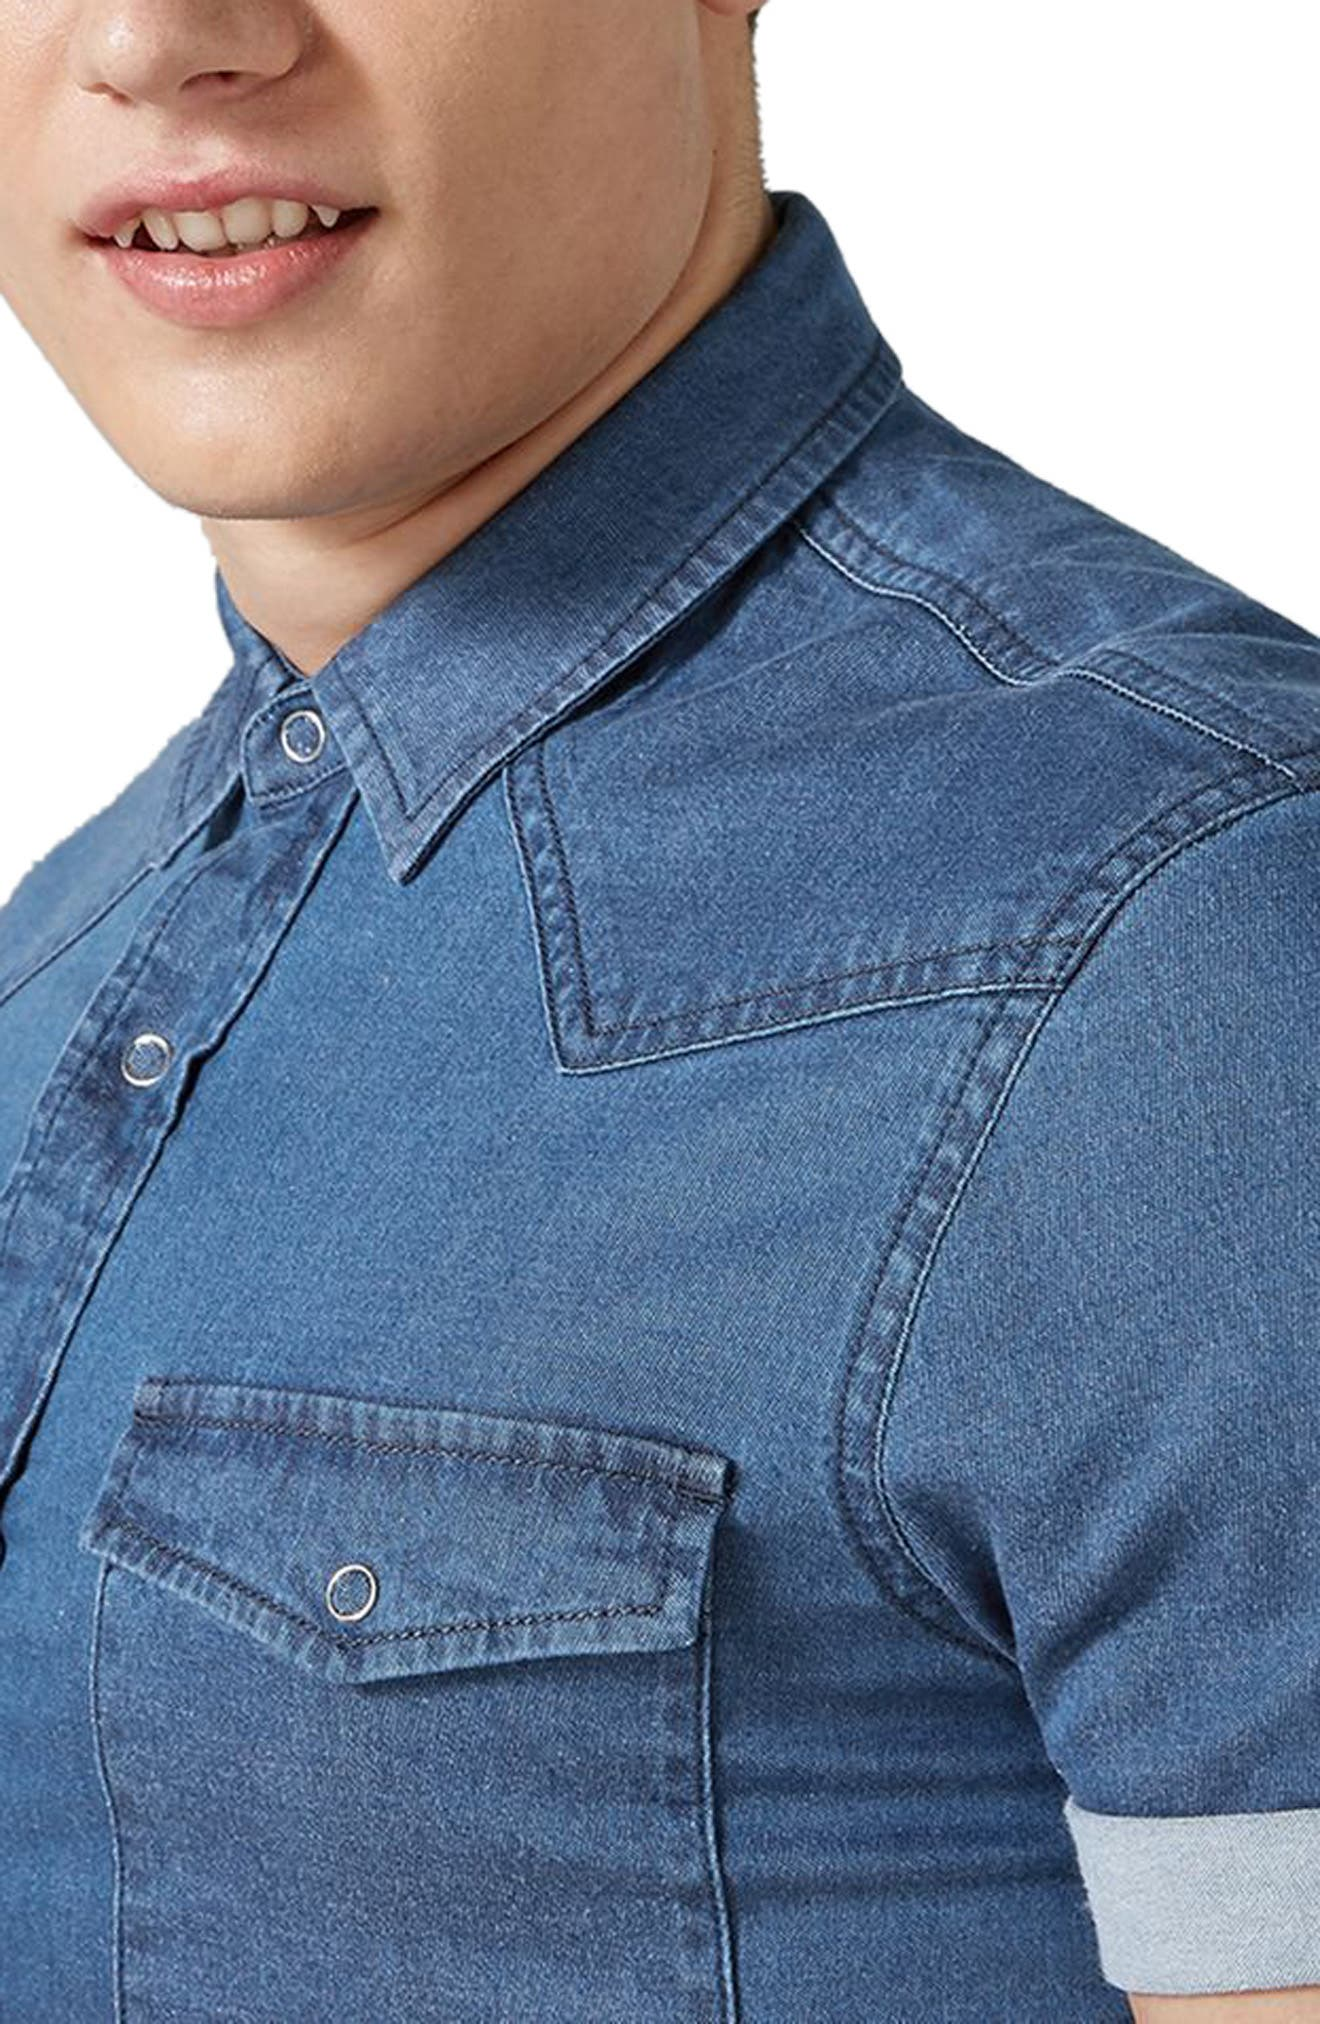 Muscle Fit Denim Shirt,                             Alternate thumbnail 2, color,                             Blue